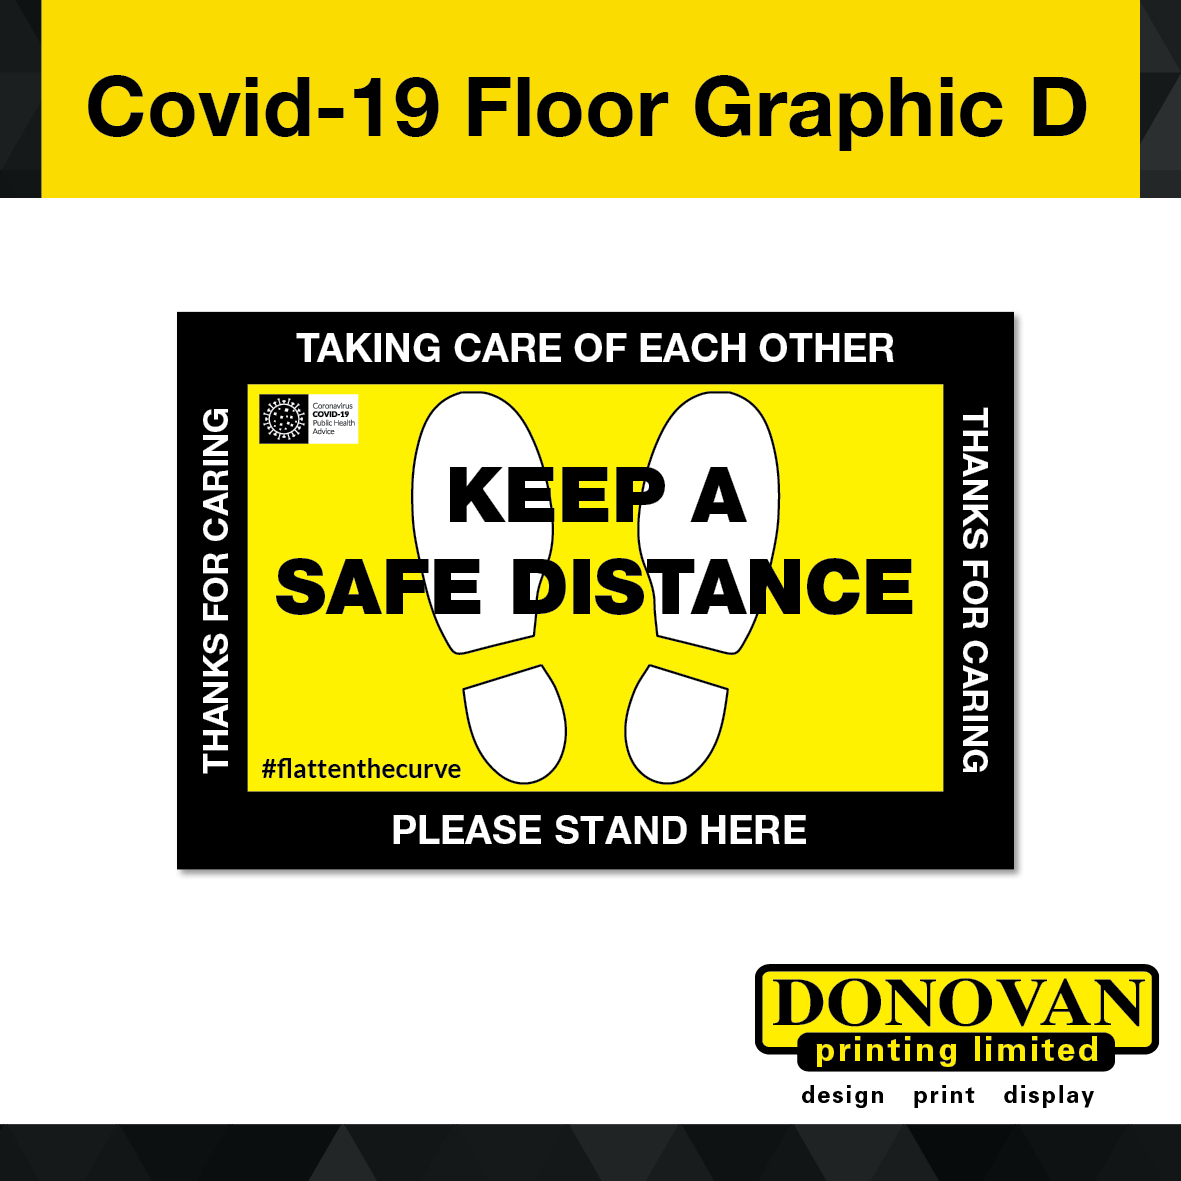 Covid Floor D Image